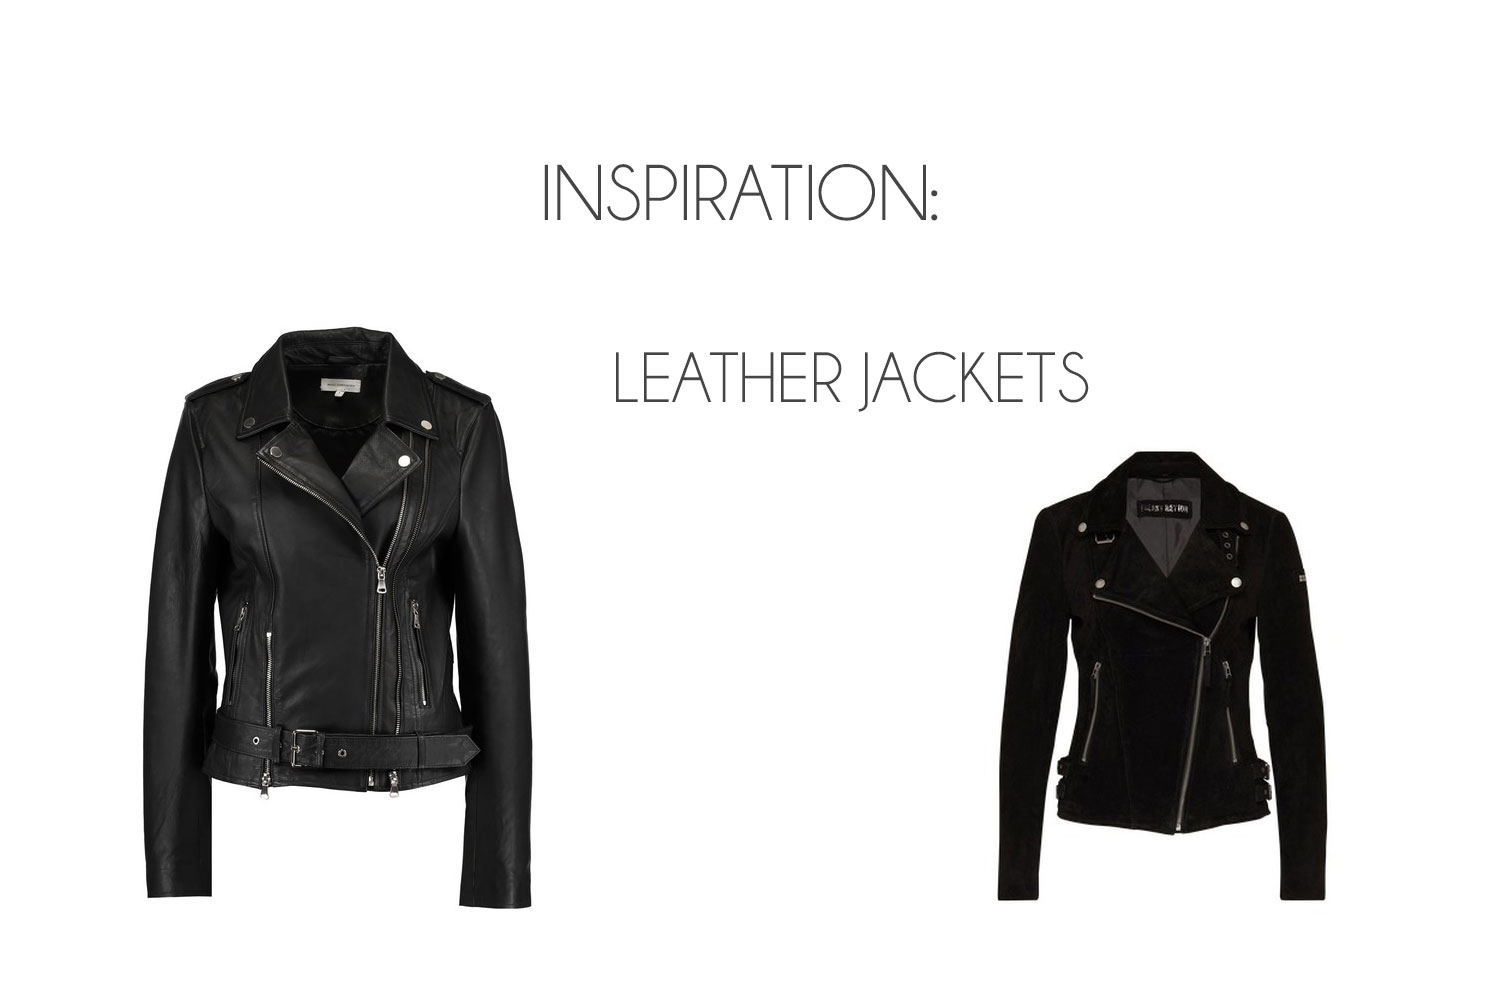 Inspiration: Leather Jackets for Autumn